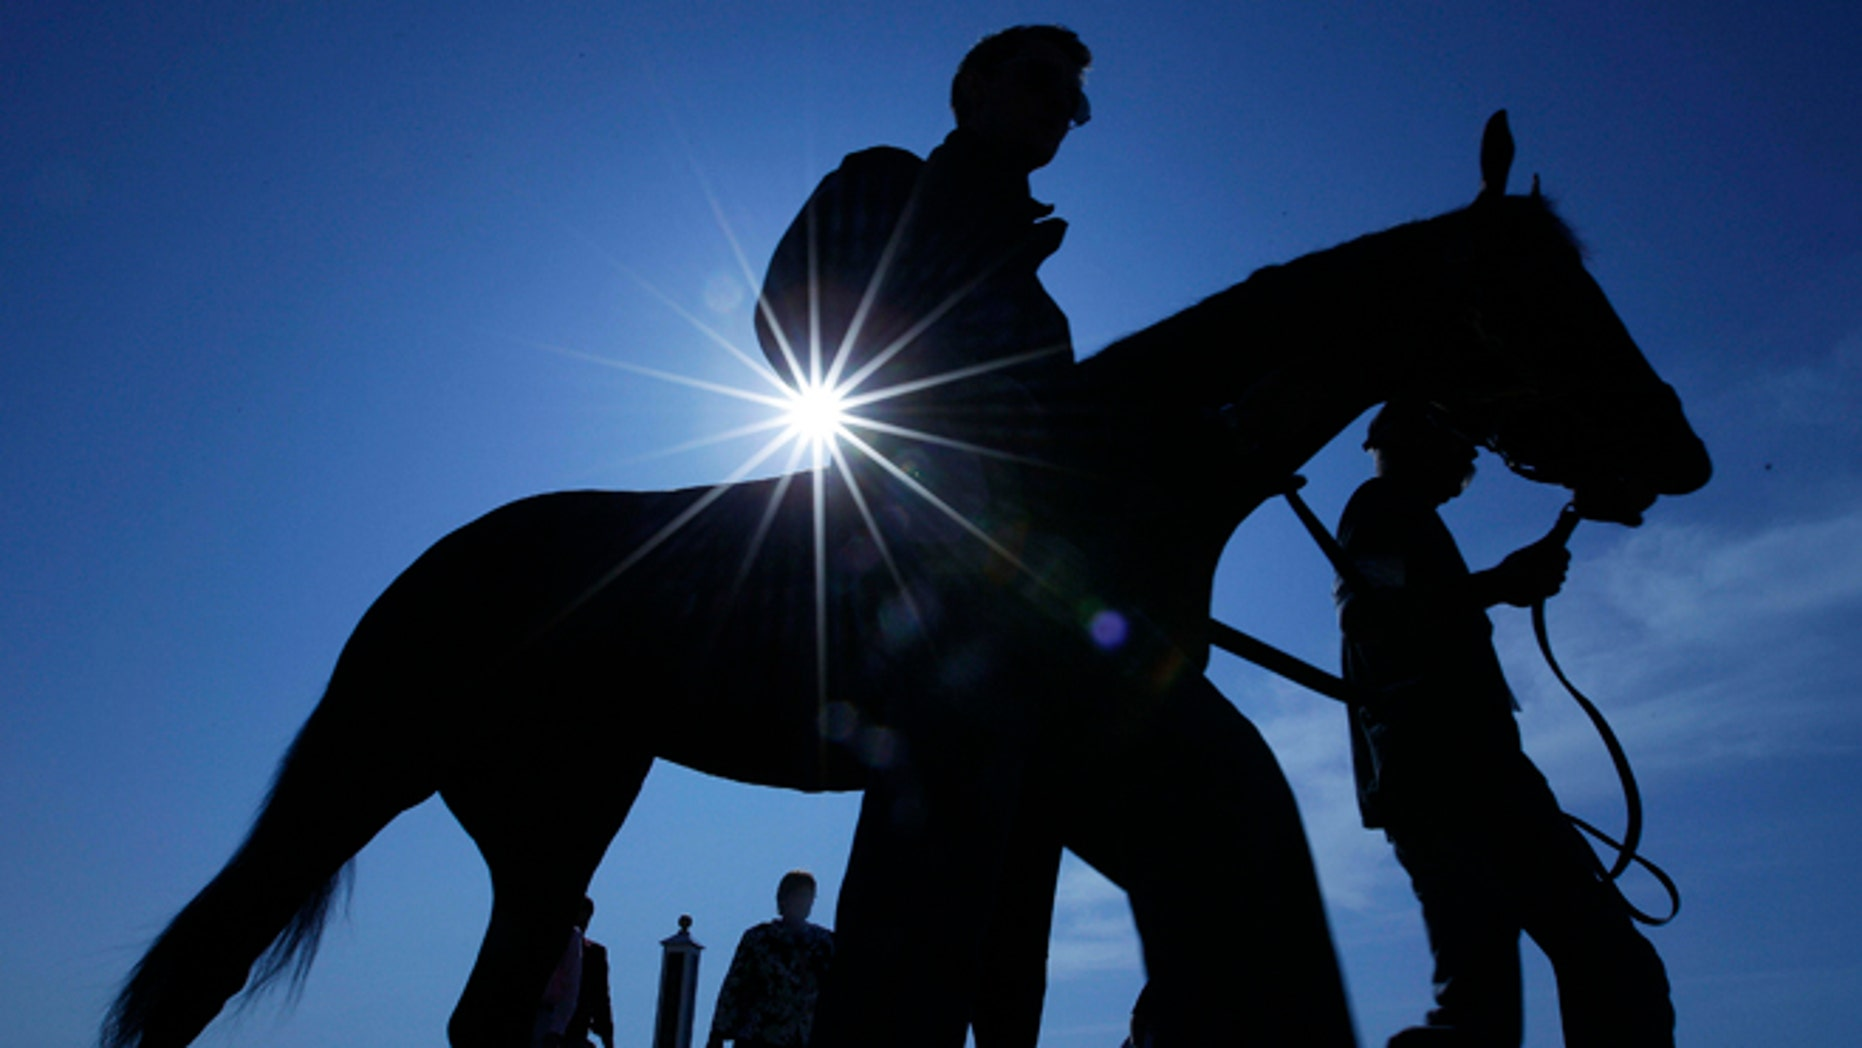 An exercise rider and horse are lead off the track after a morning workout at Pimlico Race Course, Friday, May 18, 2012, in Baltimore. The Preakness Stakes horse race takes place Saturday at Pimlico.(AP Photo/Matt Slocum)